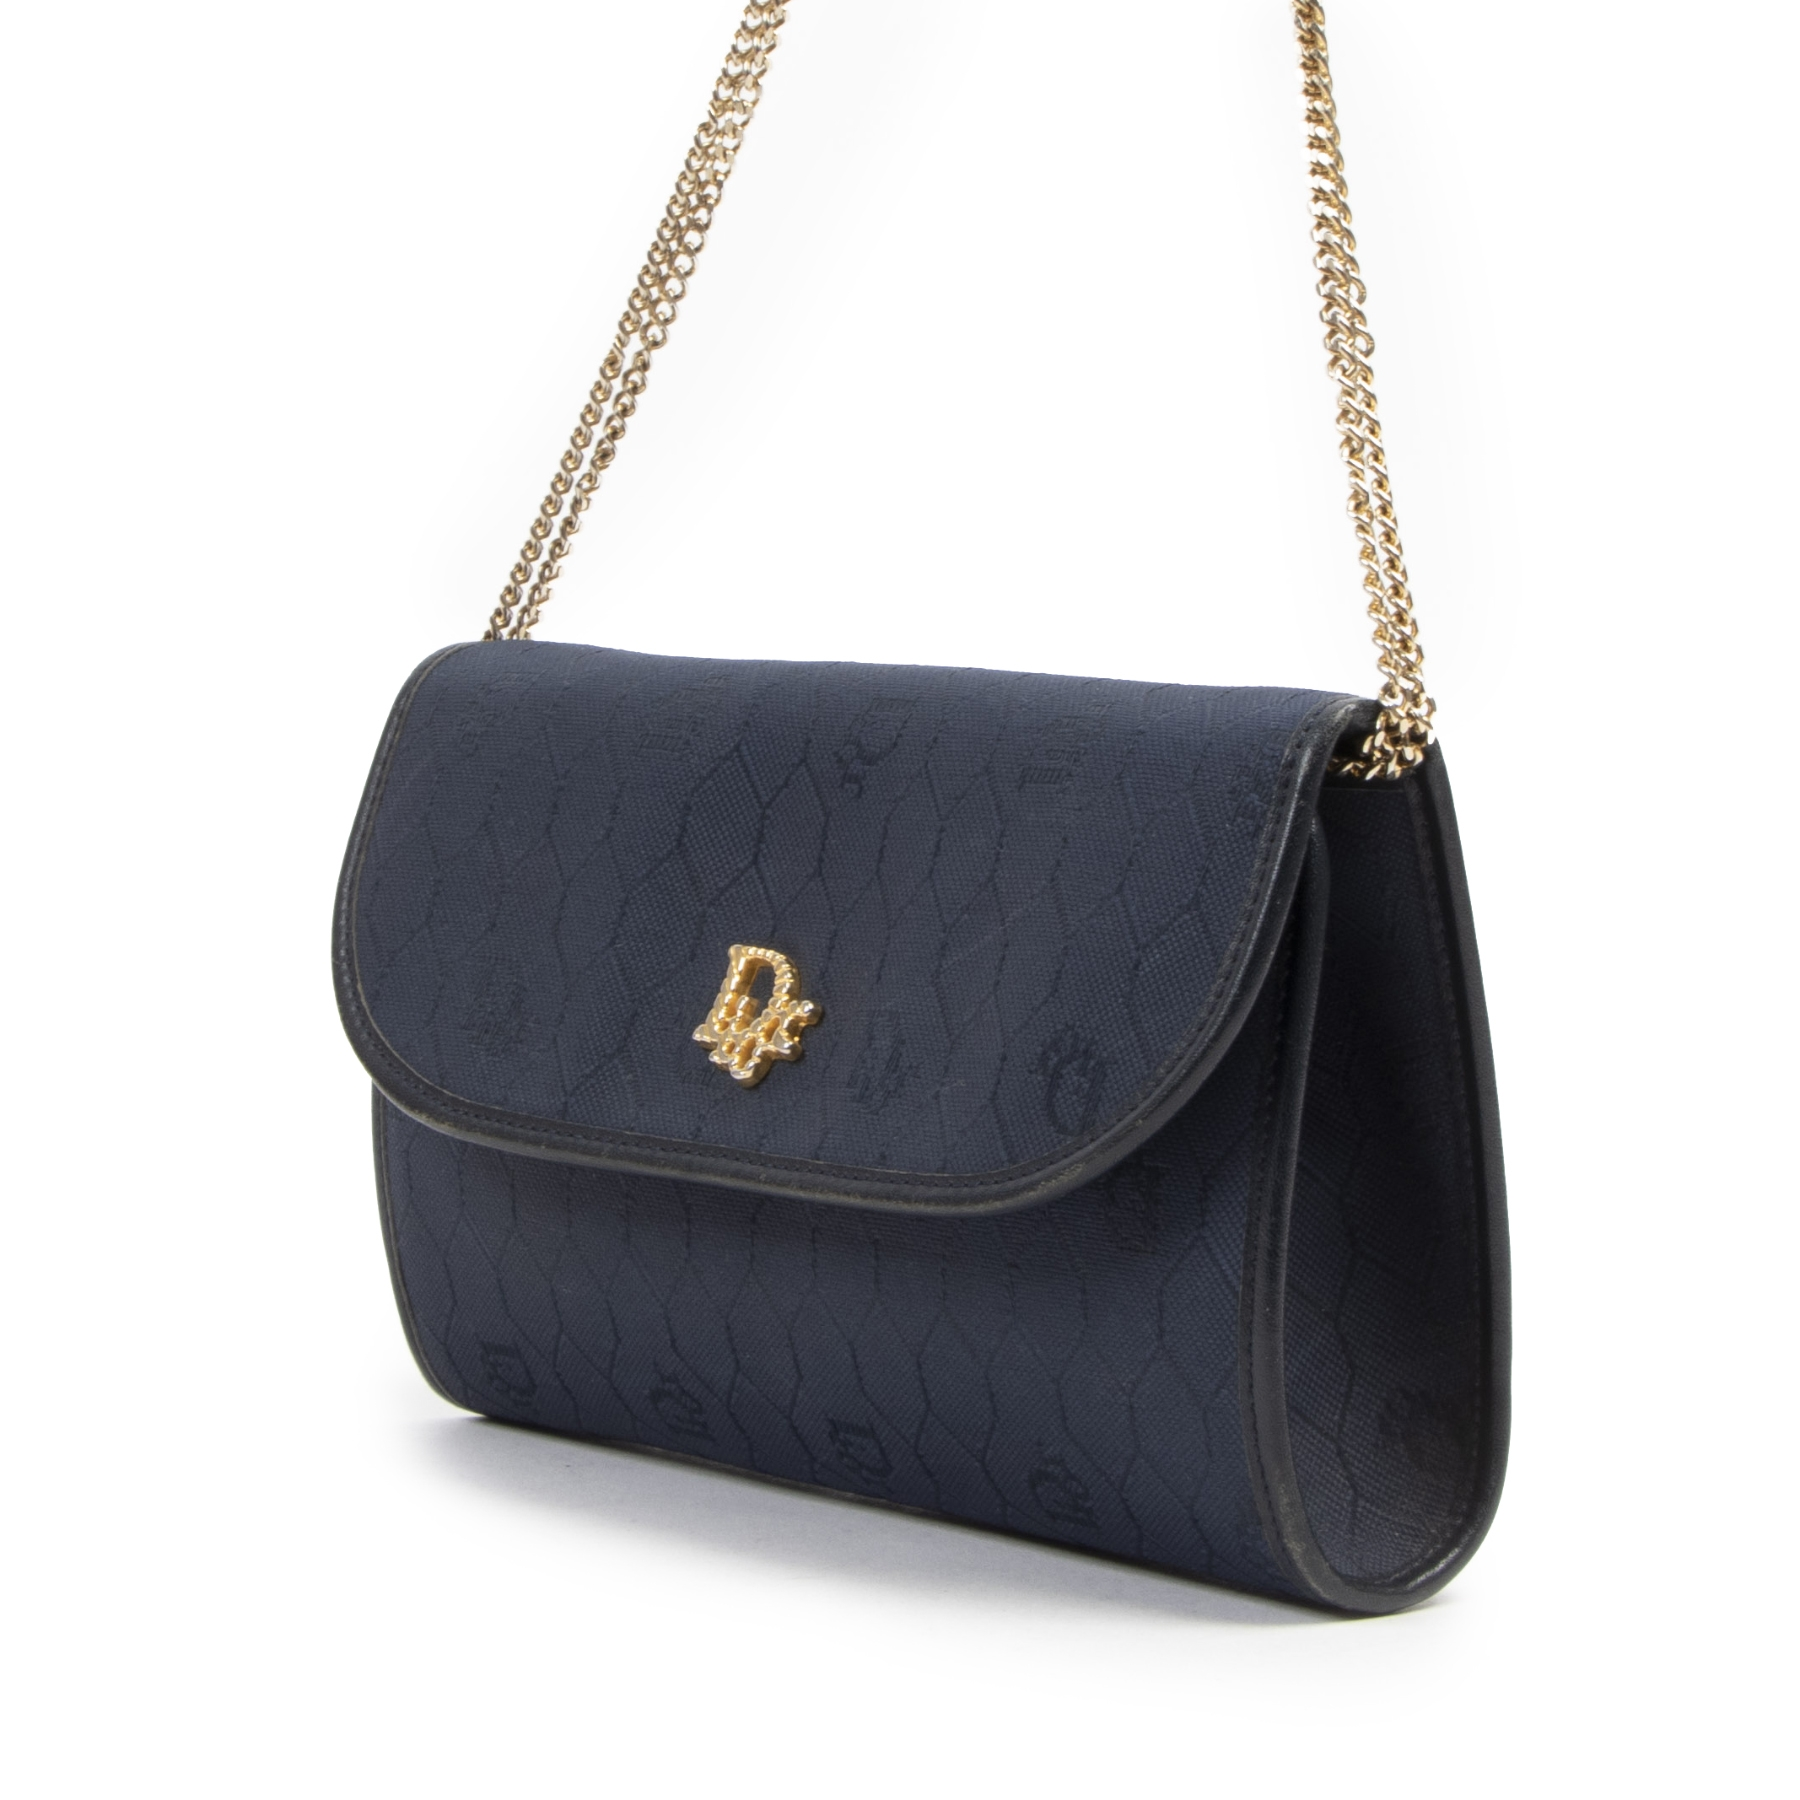 Authentieke tweedehands vintage Christian Dior Honeycomb Navy Canvas Chain Crossbody Bag koop online webshop LabelLOV